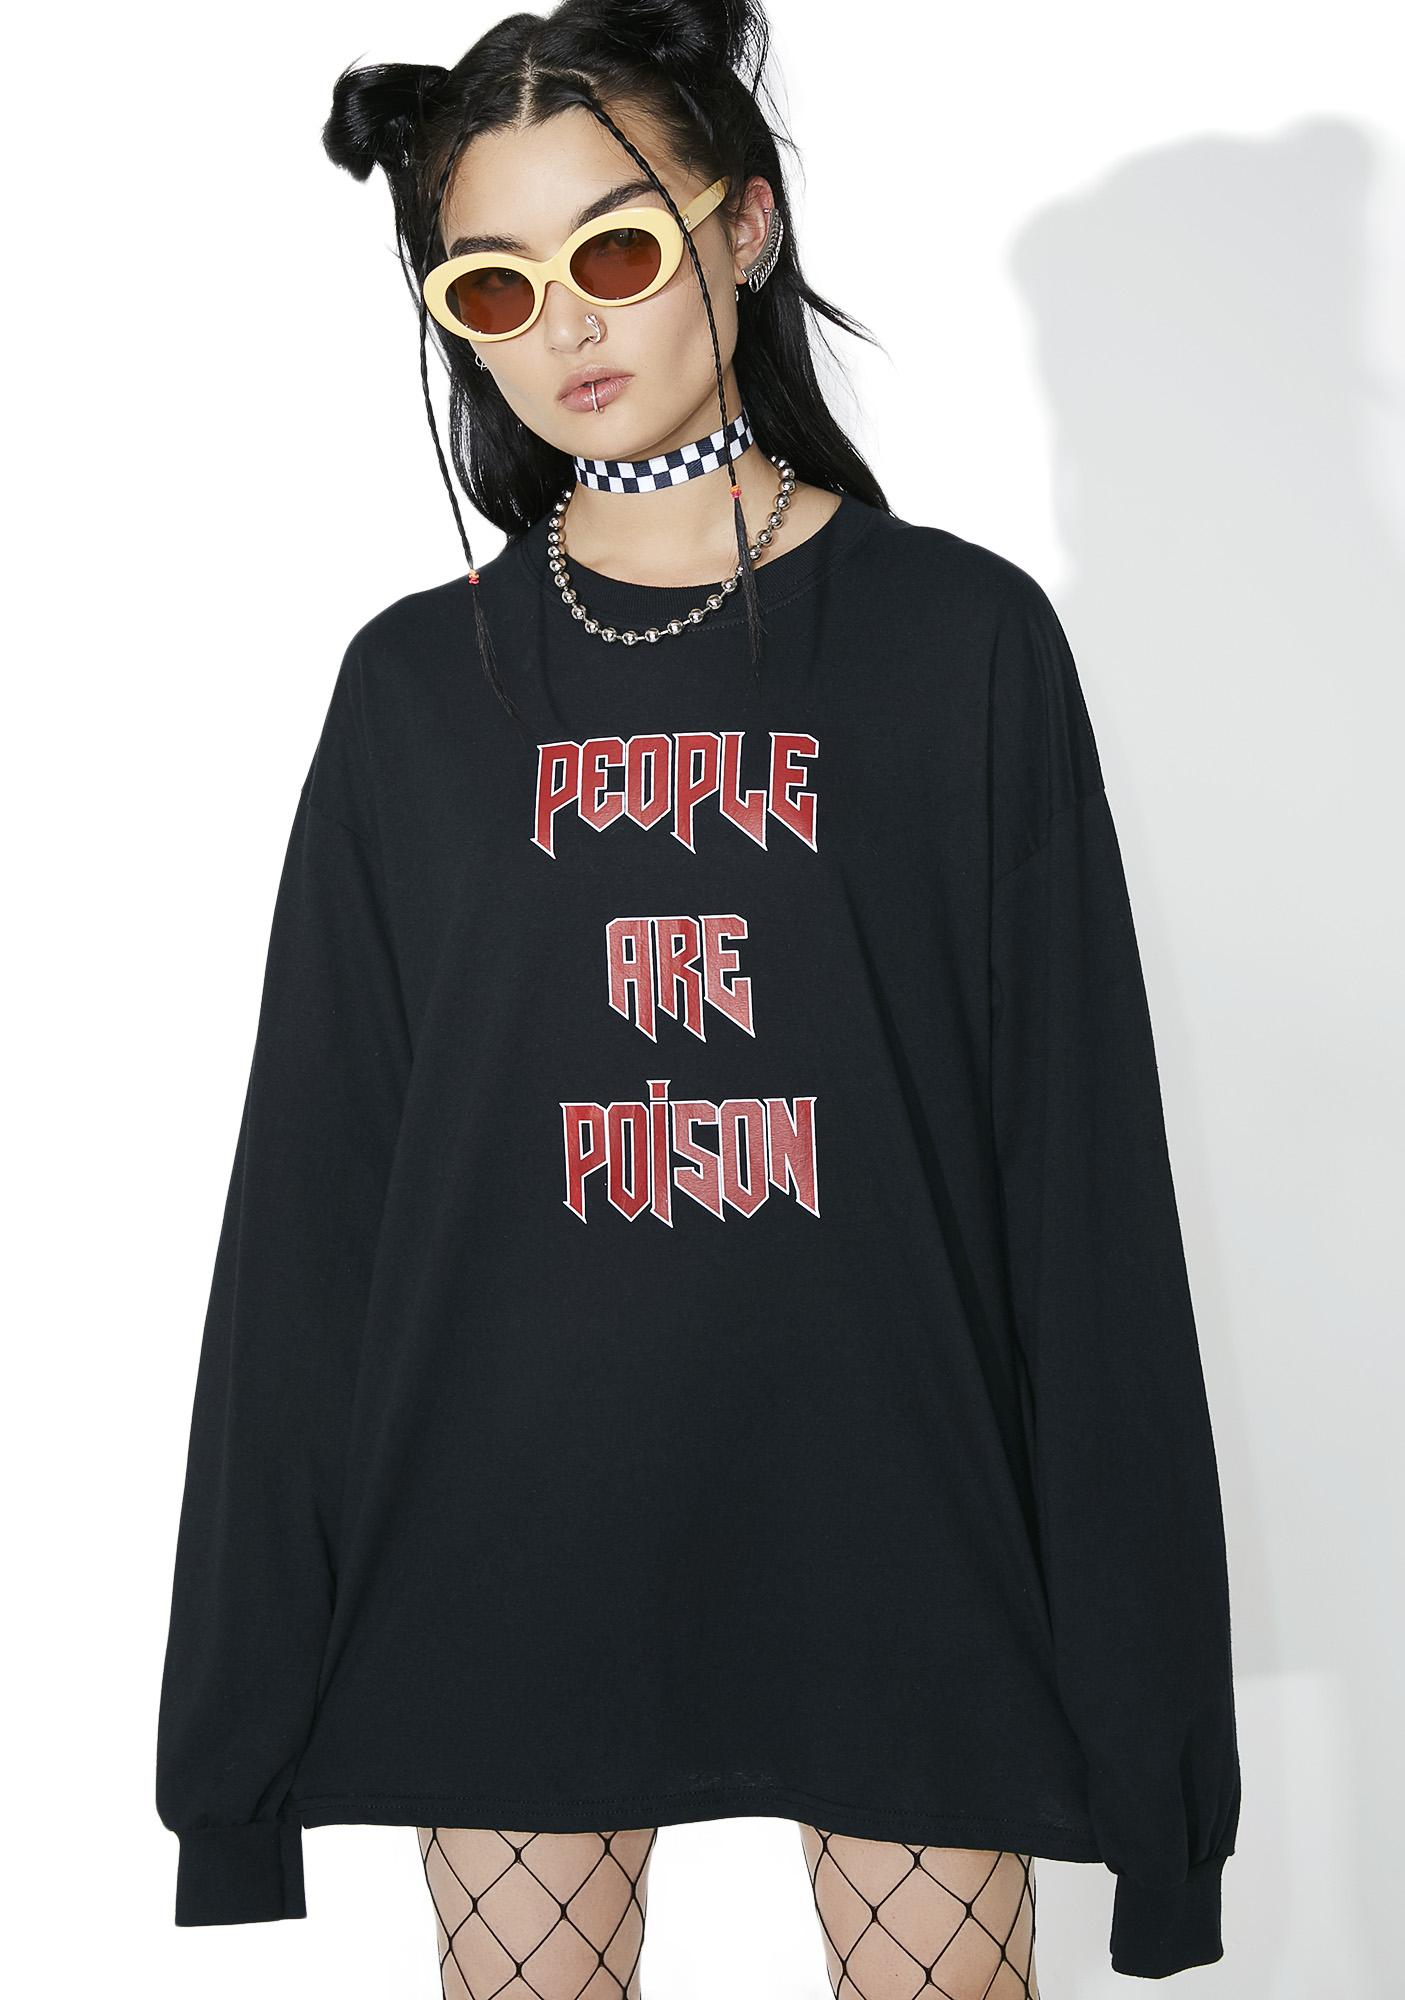 The Ragged Priest Poison Tee